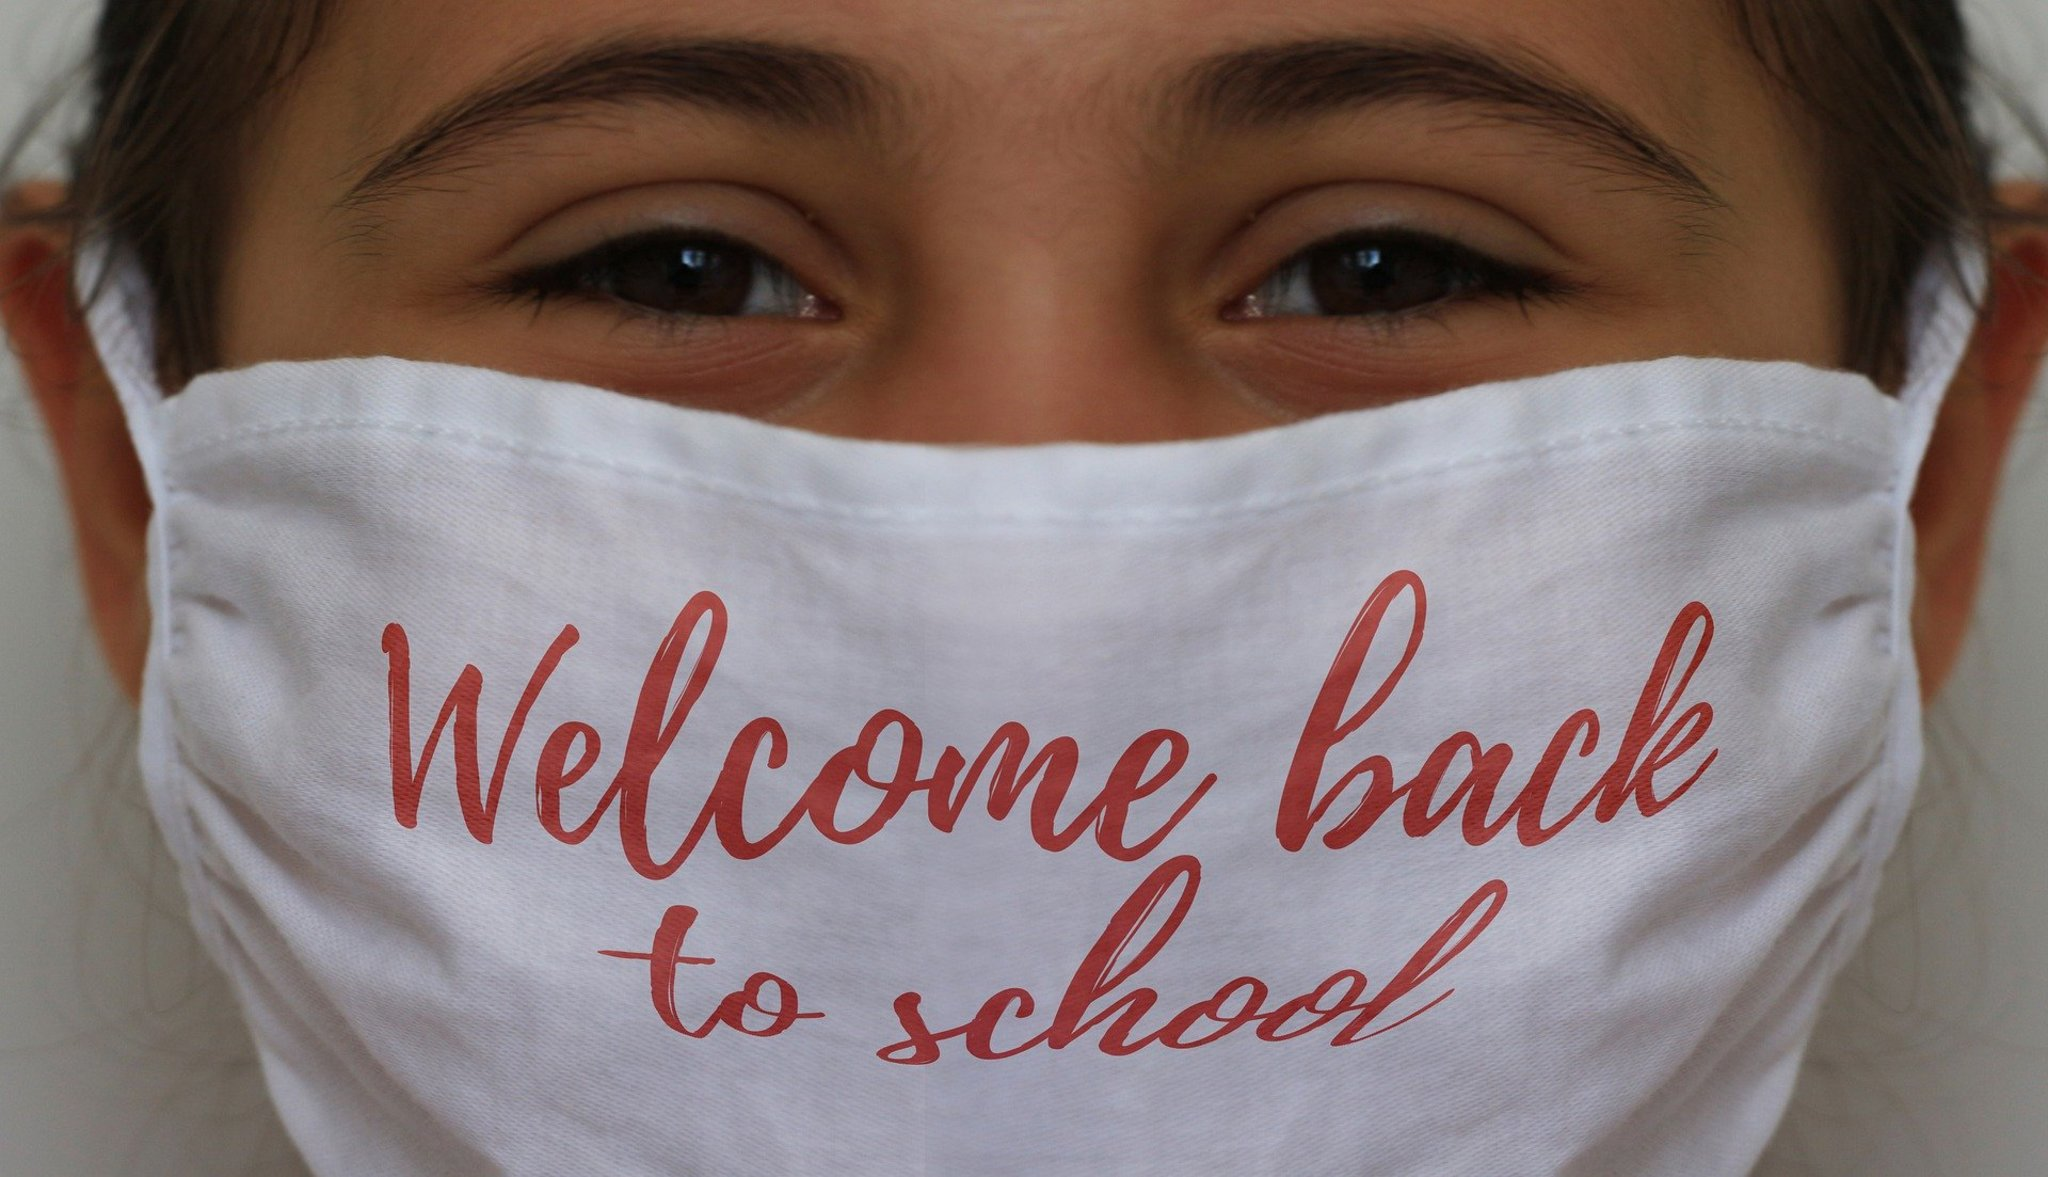 Girl wearing face mask on which is printed 'back to school'